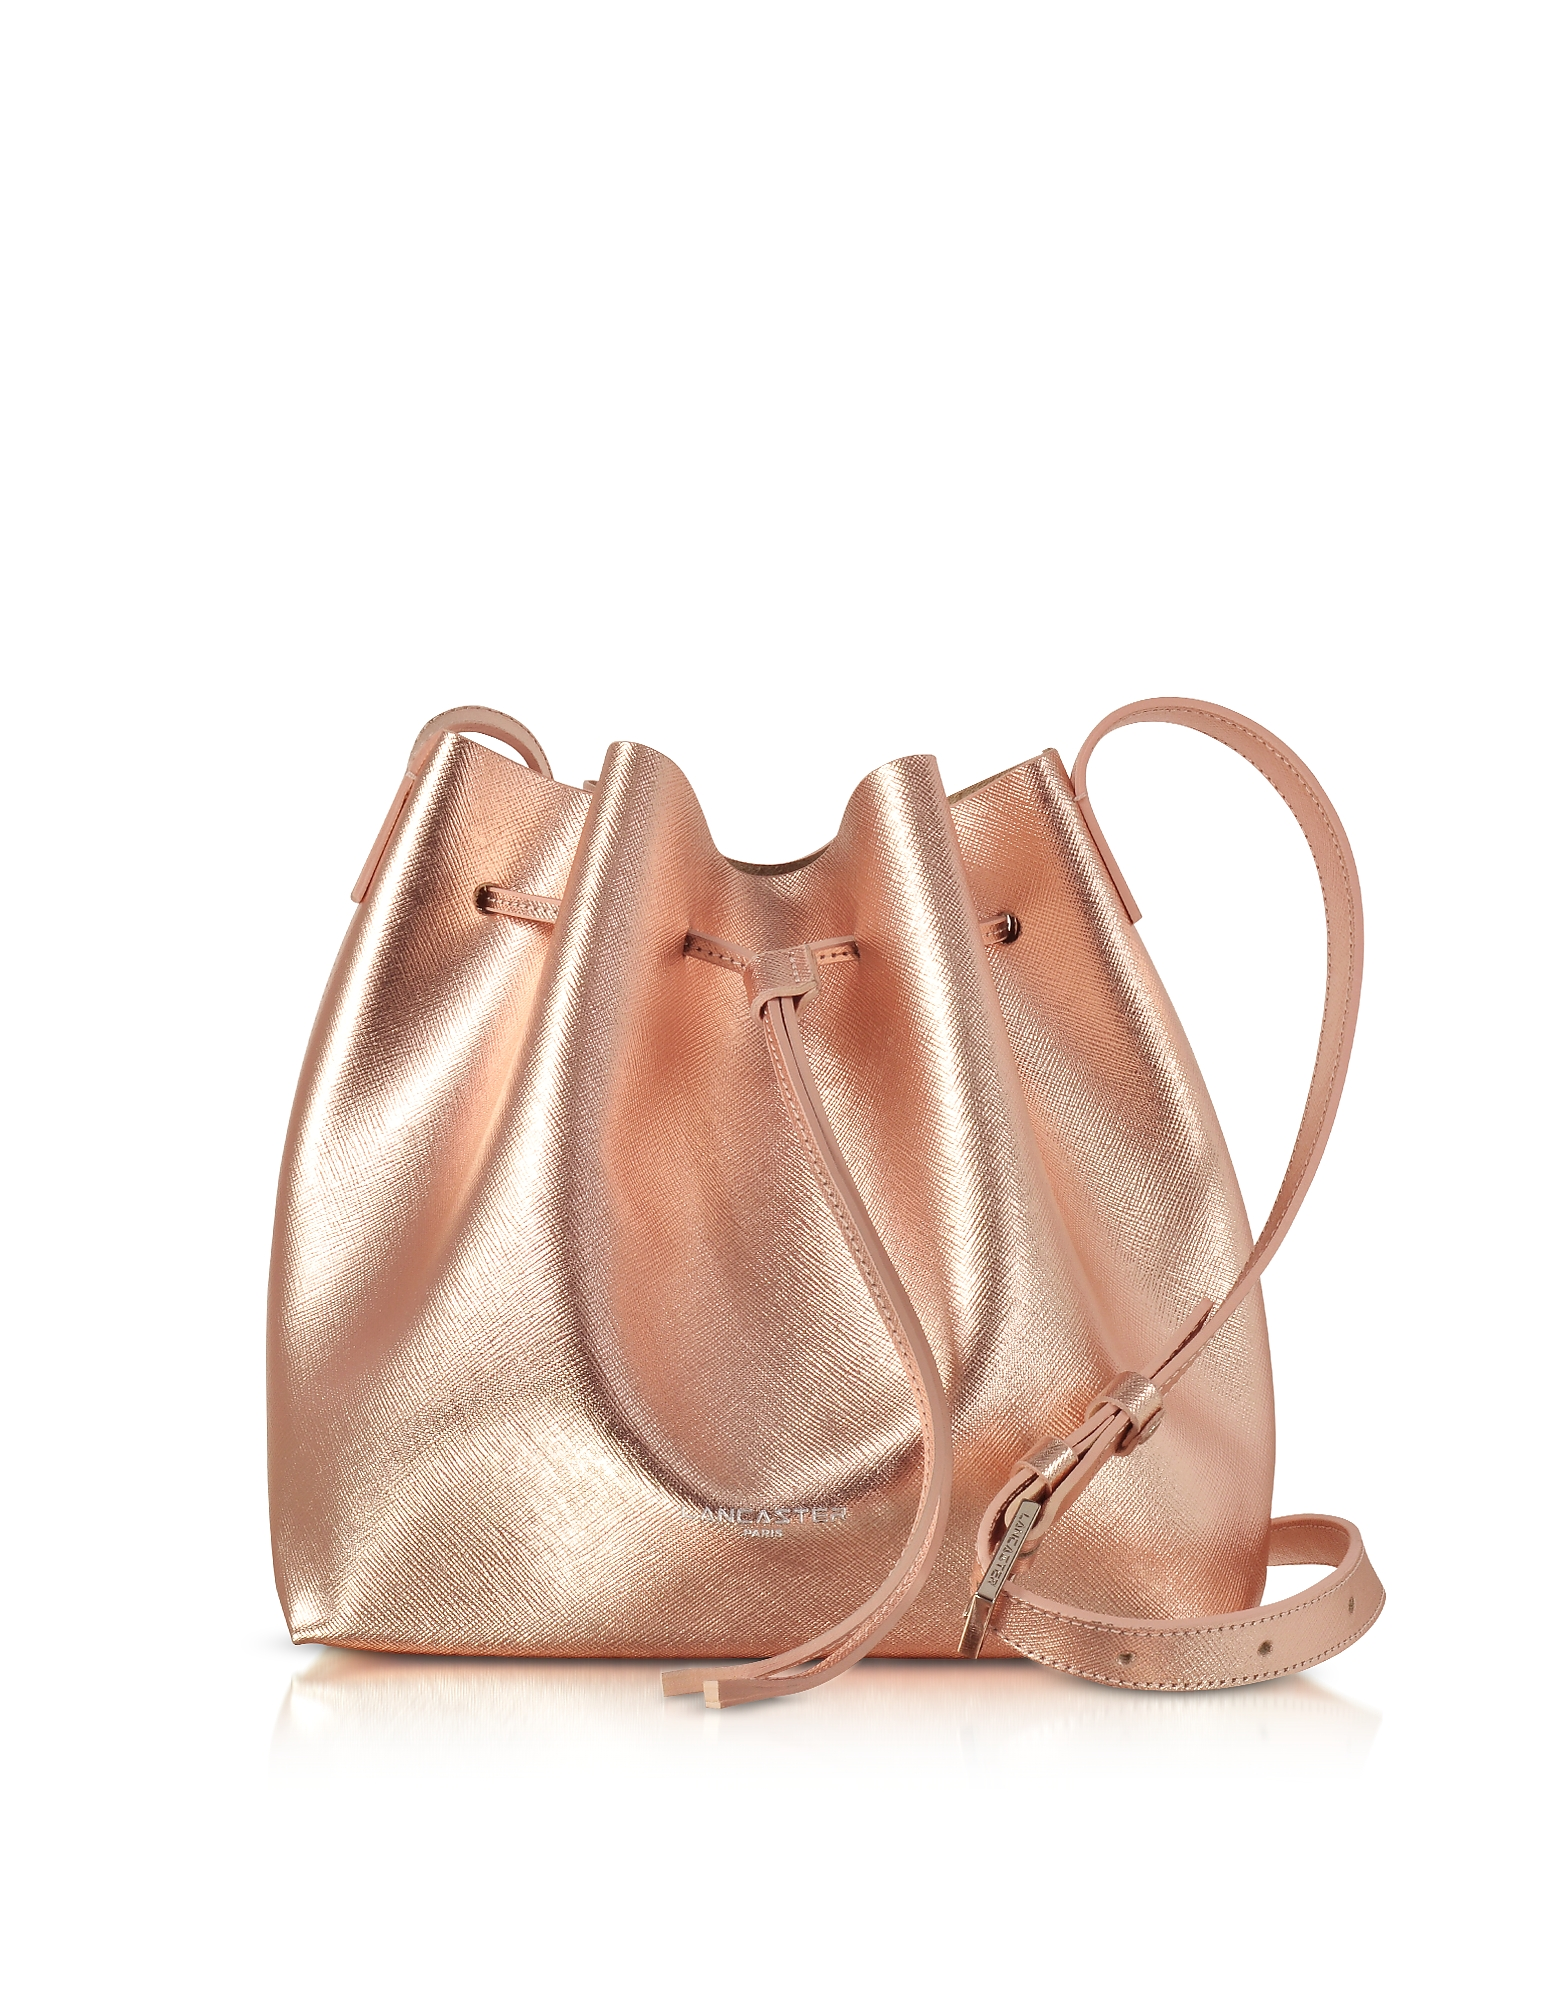 Lancaster Paris Handbags, Pur Saffiano Leather Metallic Powder Pink Bucket Bag